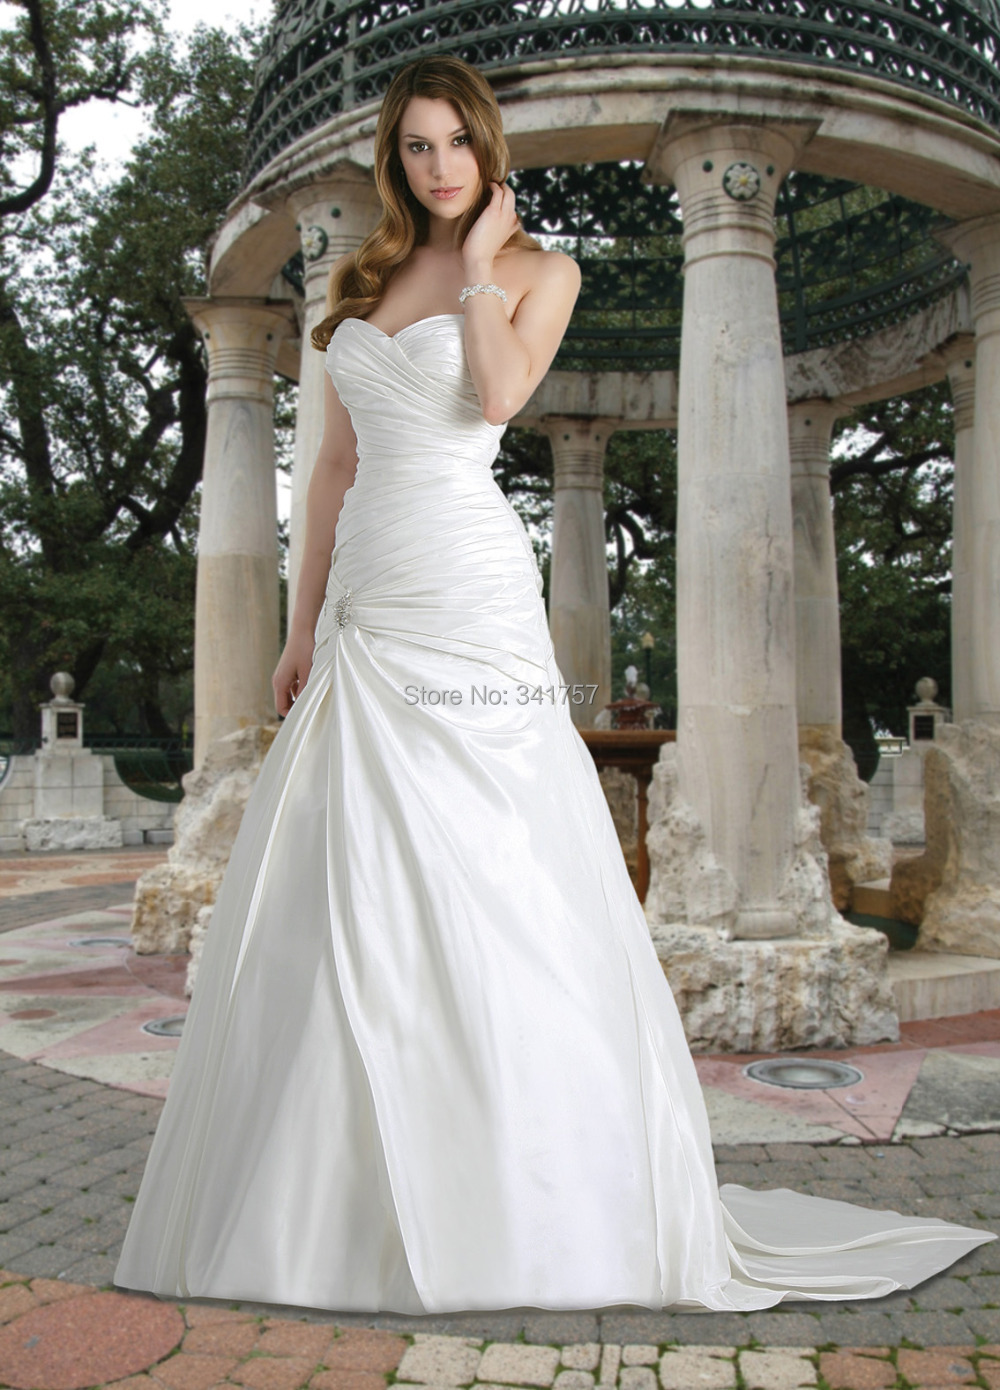 Cheap A Line Wedding Dresses 003 - Cheap A Line Wedding Dresses